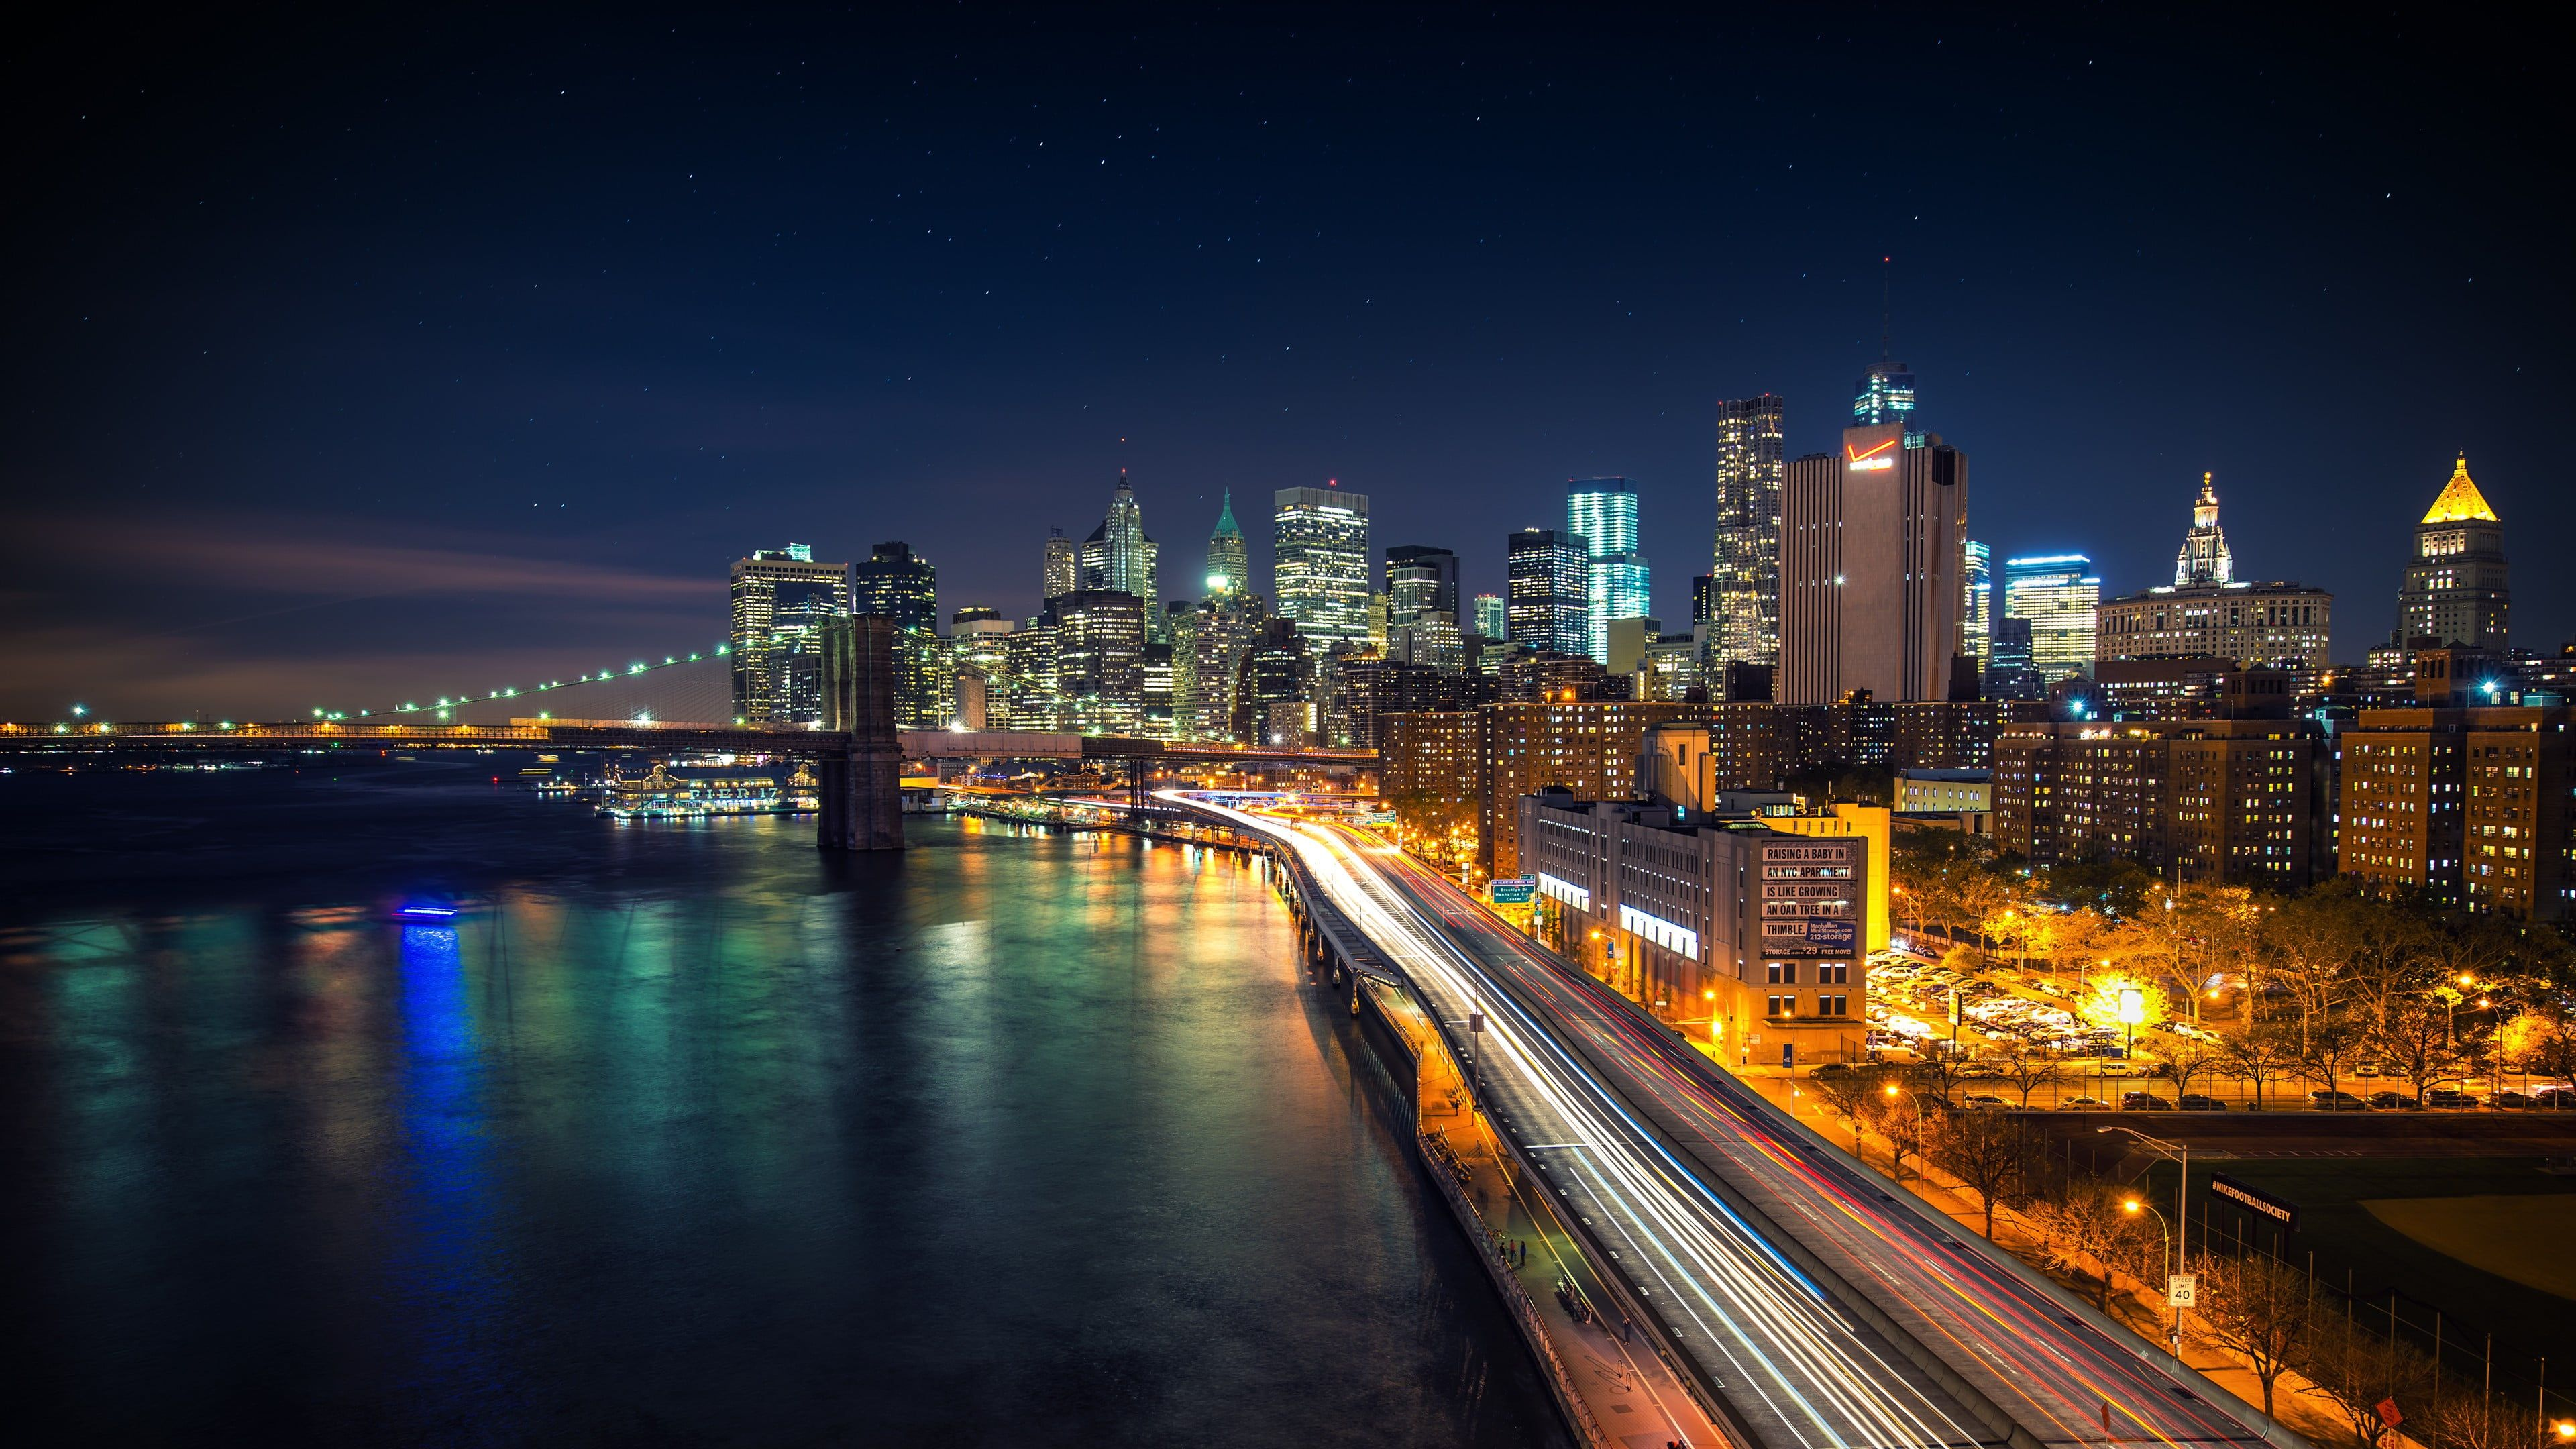 City Building Structure City During Night Cityscape New York City Long Exposure Usa Brooklyn Bridge City Wallpaper Mkbhd Wallpapers Background Hd Wallpaper